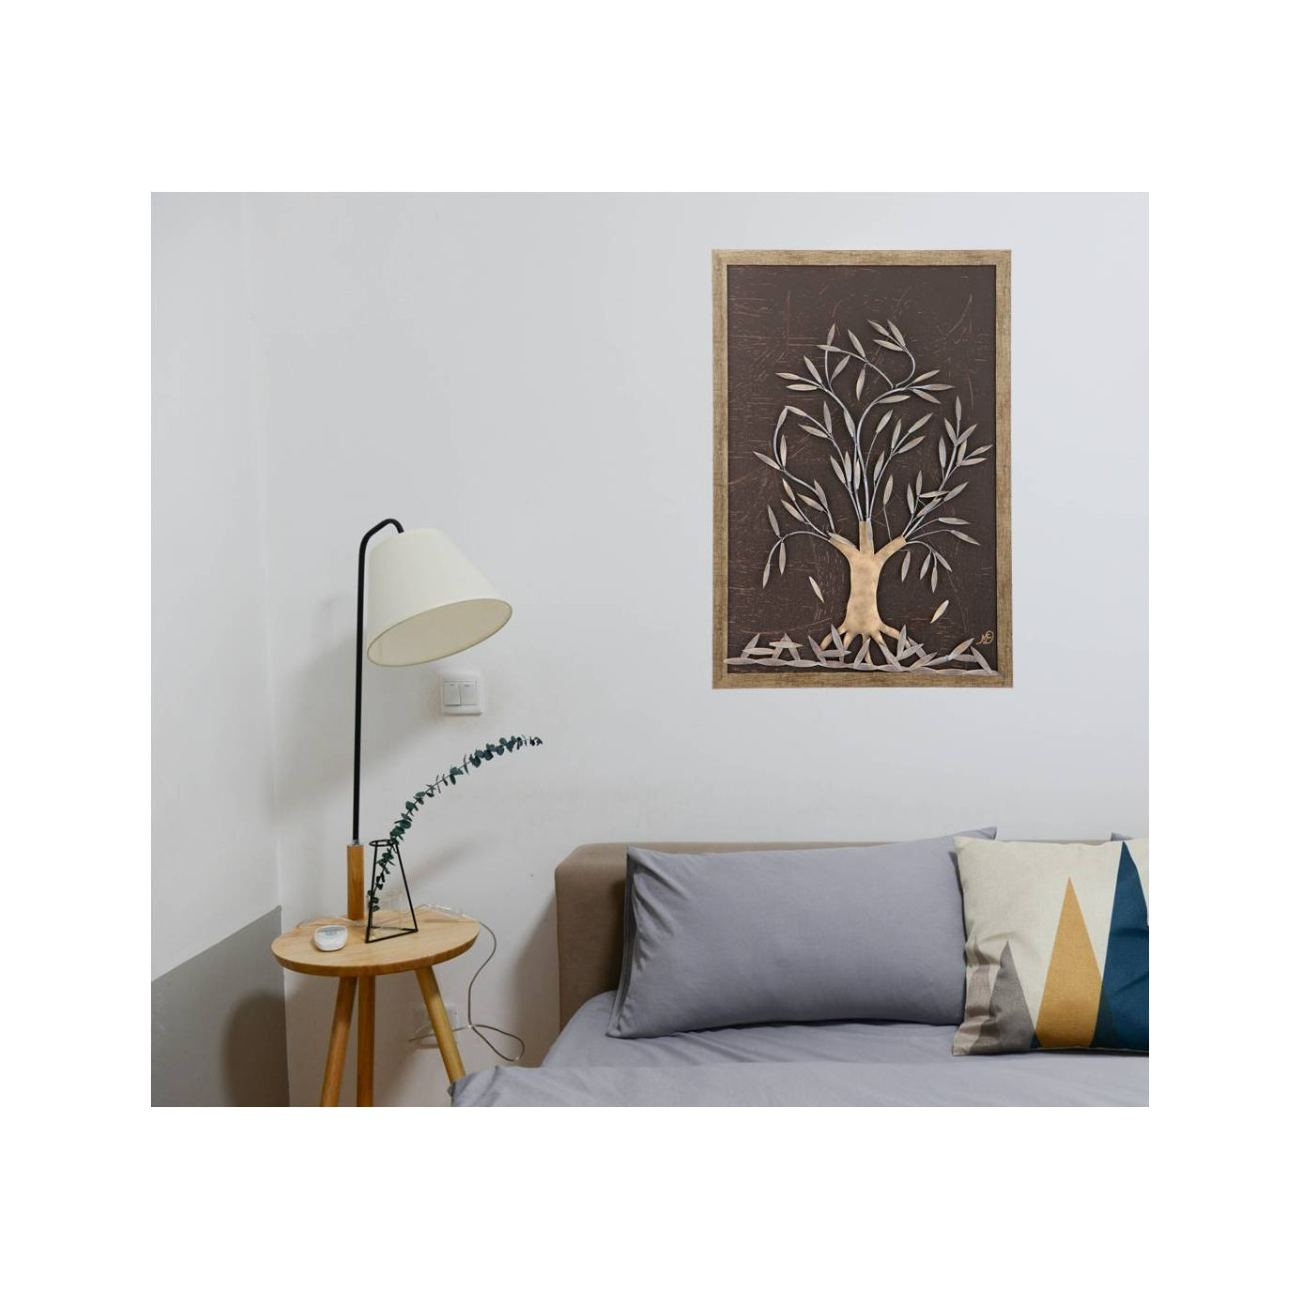 "Latest Olive Tree, 3D Handmade Wood & Metal Wall Art Framed Decor, 25"" (64Cm) Inside Olive/gray Metal Wall Decor (View 8 of 20)"